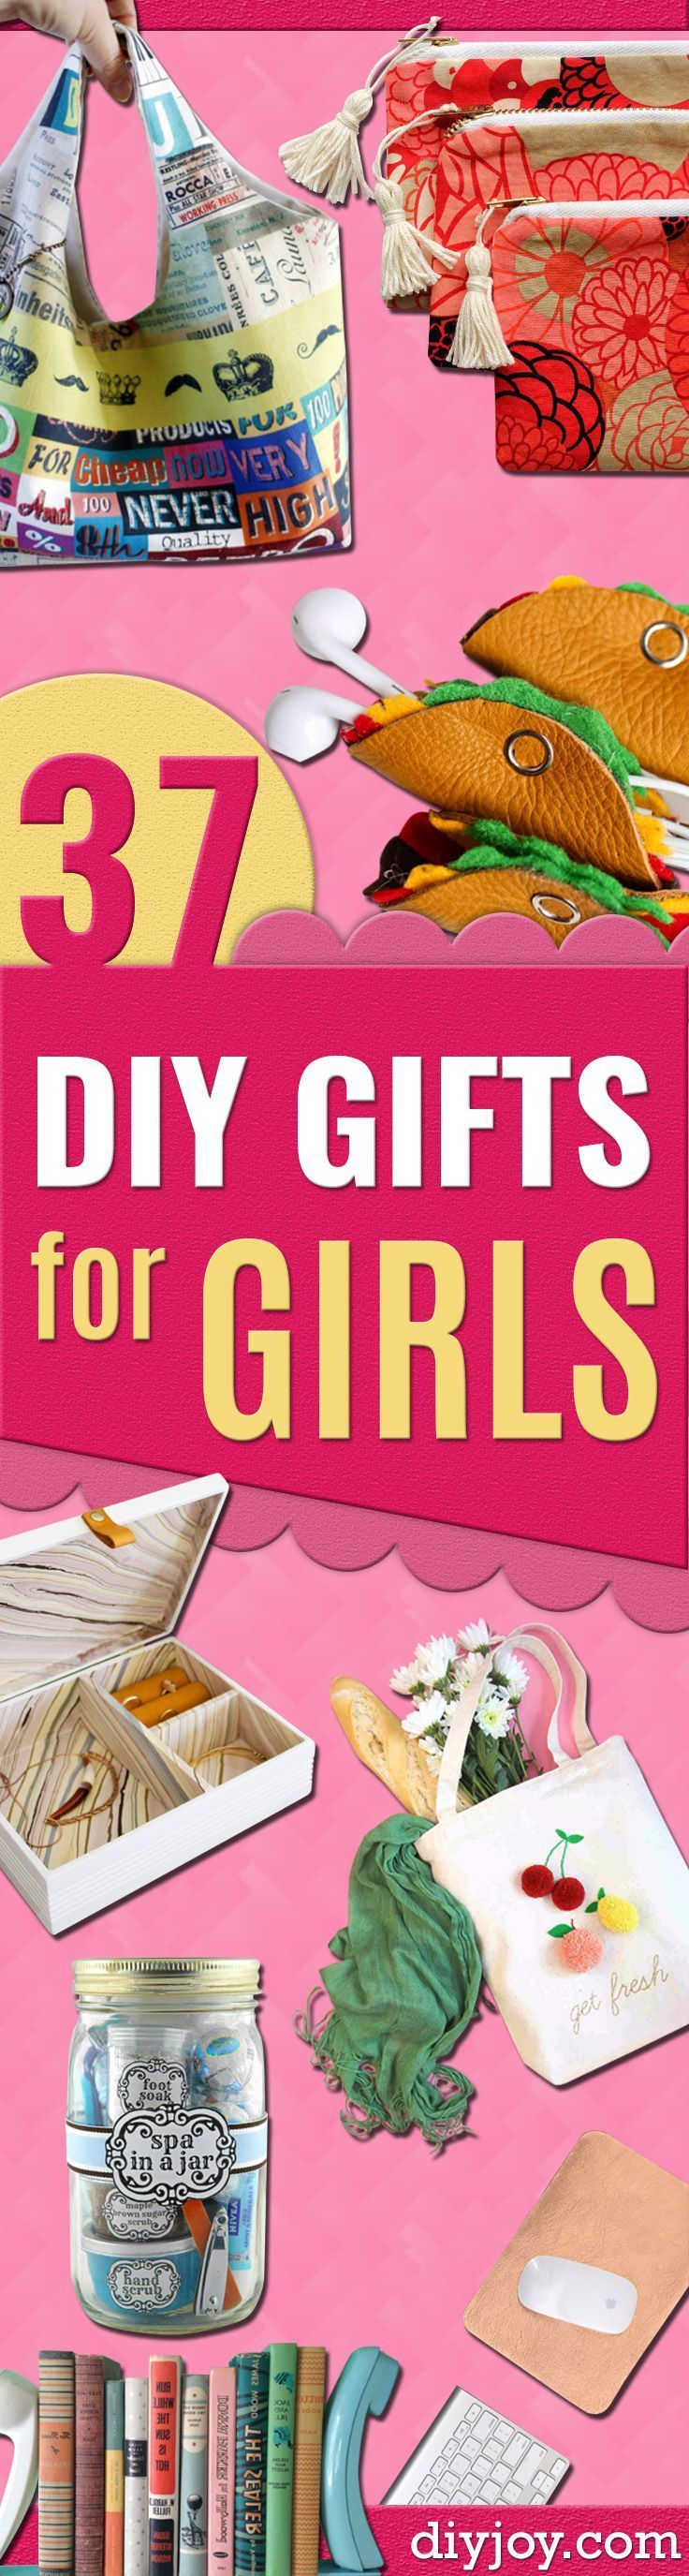 Make Cool DYI Gift Ideas for Young and Older Girls, Teens and Teenagers - Awesome Room and Home Decor for Bedroom, Fashion, Jewelry and Hair Accessories - Cheap Craft Projects To Make For a Girl for Christmas Presents http://diyjoy.com/diy-gifts-for-girls